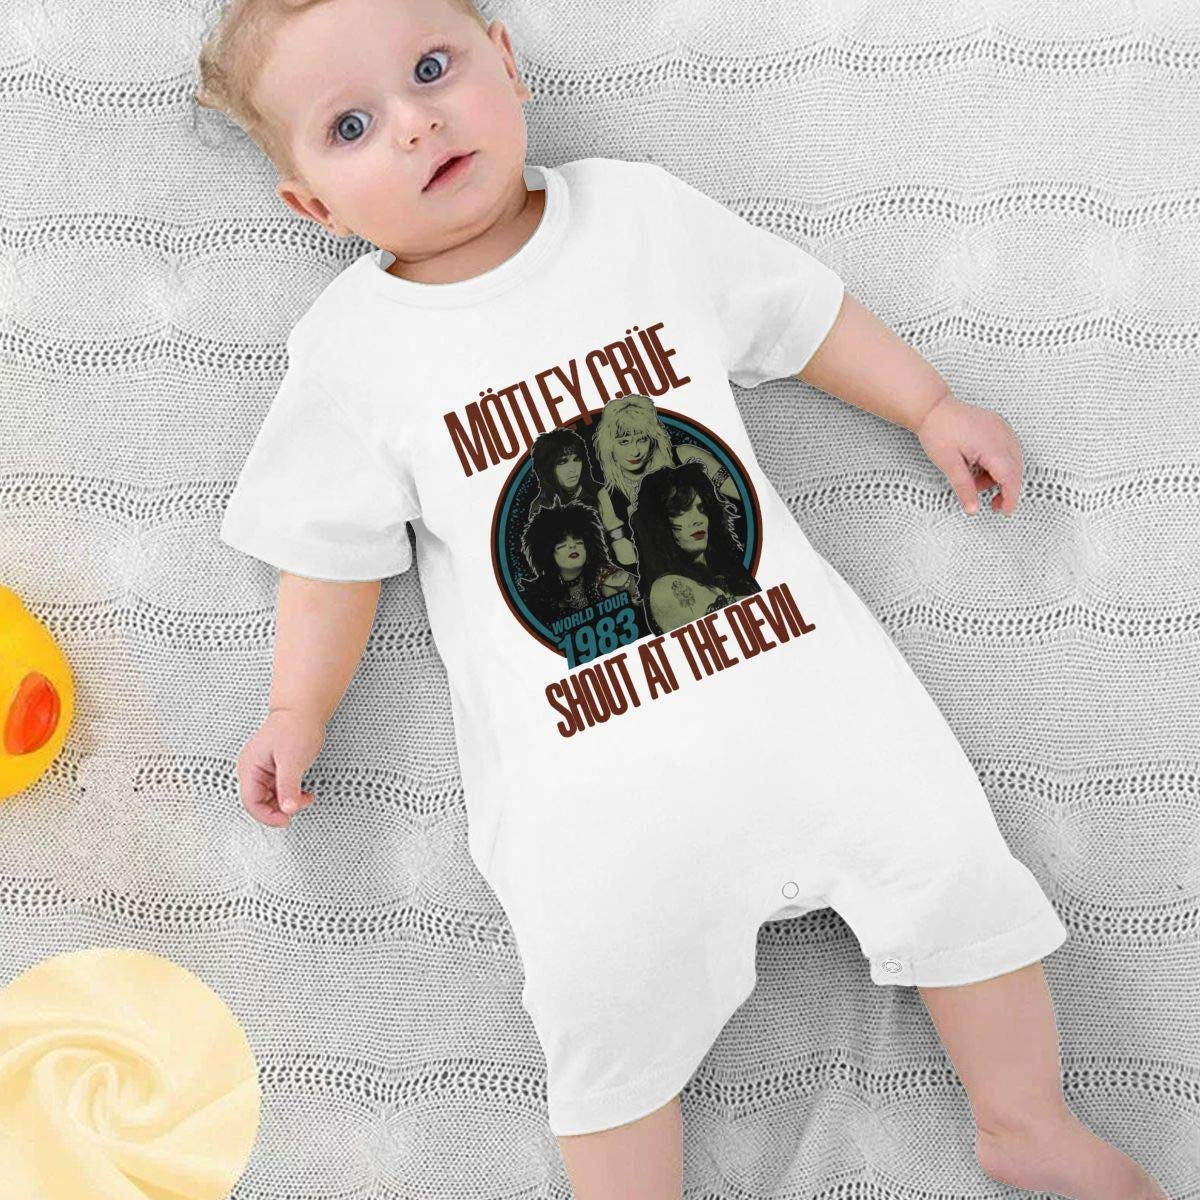 HGJLTY Motley Crue Baby Jumpsuit Boys Girls 100/% Cotton Short Sleeve Rompers Double Print